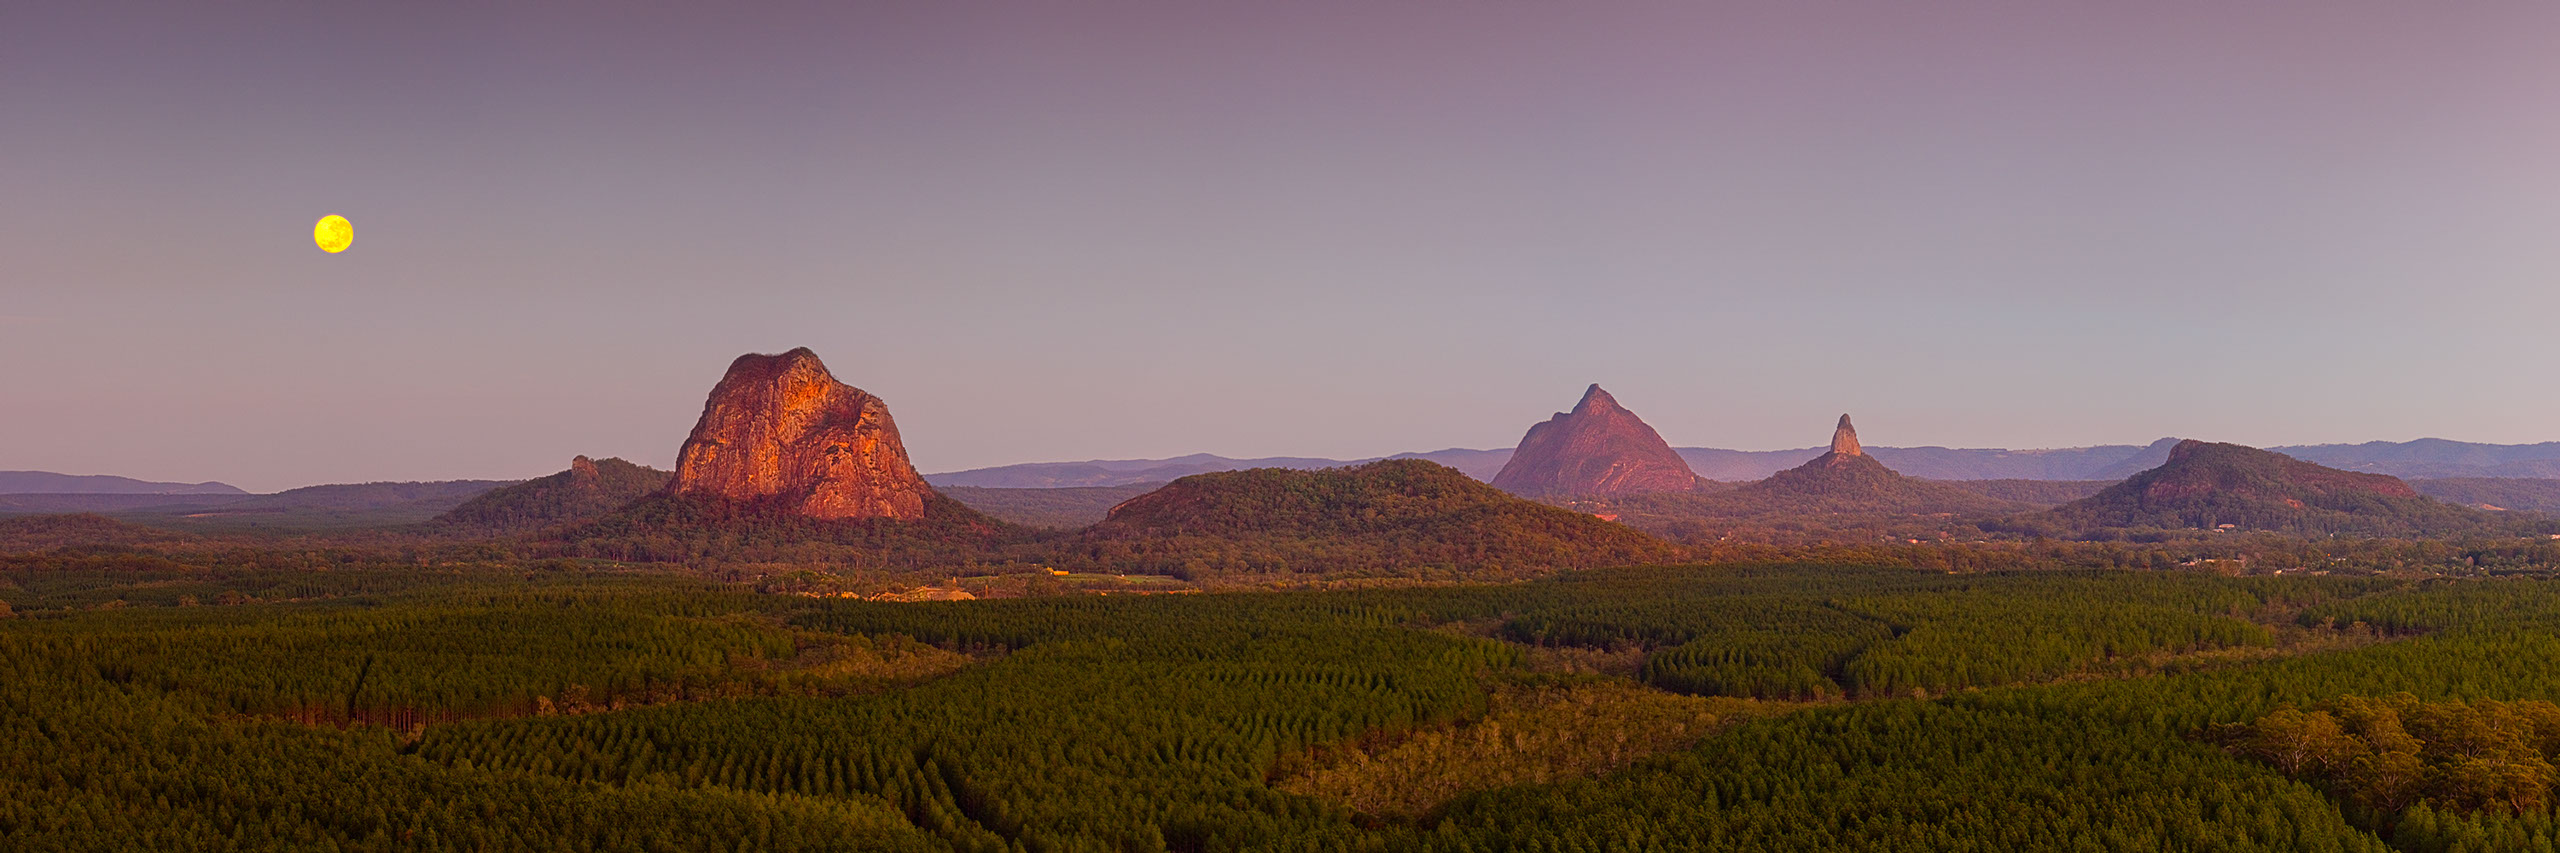 Images of Glasshouse Mountains | 2560x853